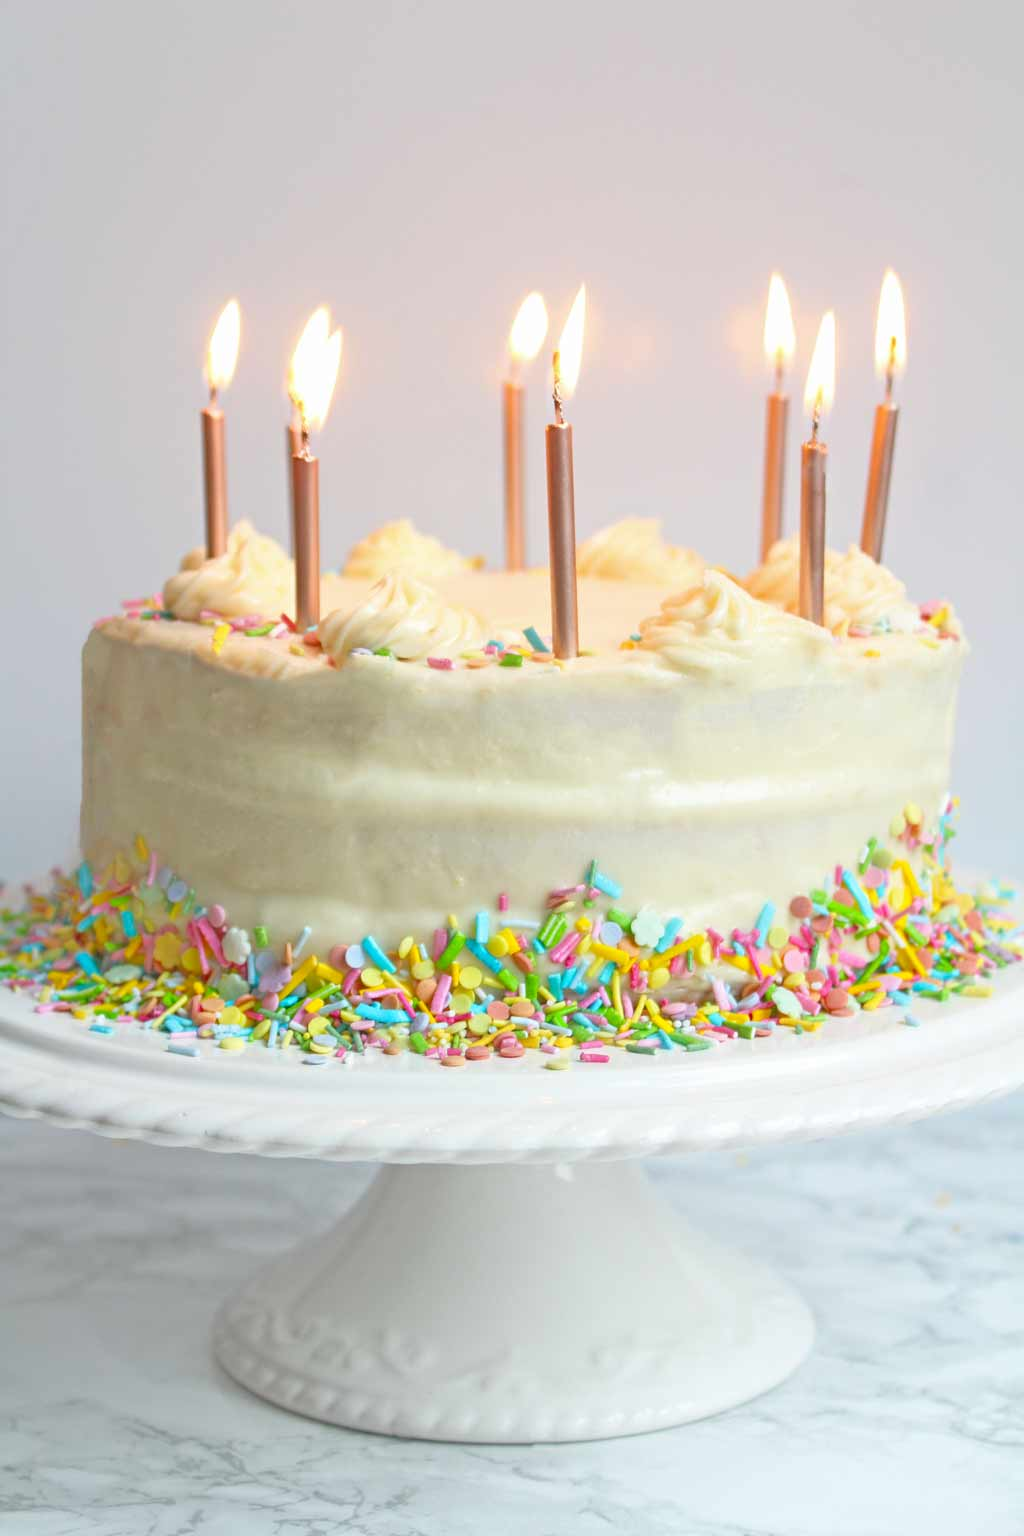 vegan birthday cake on a cake stand with candles lit